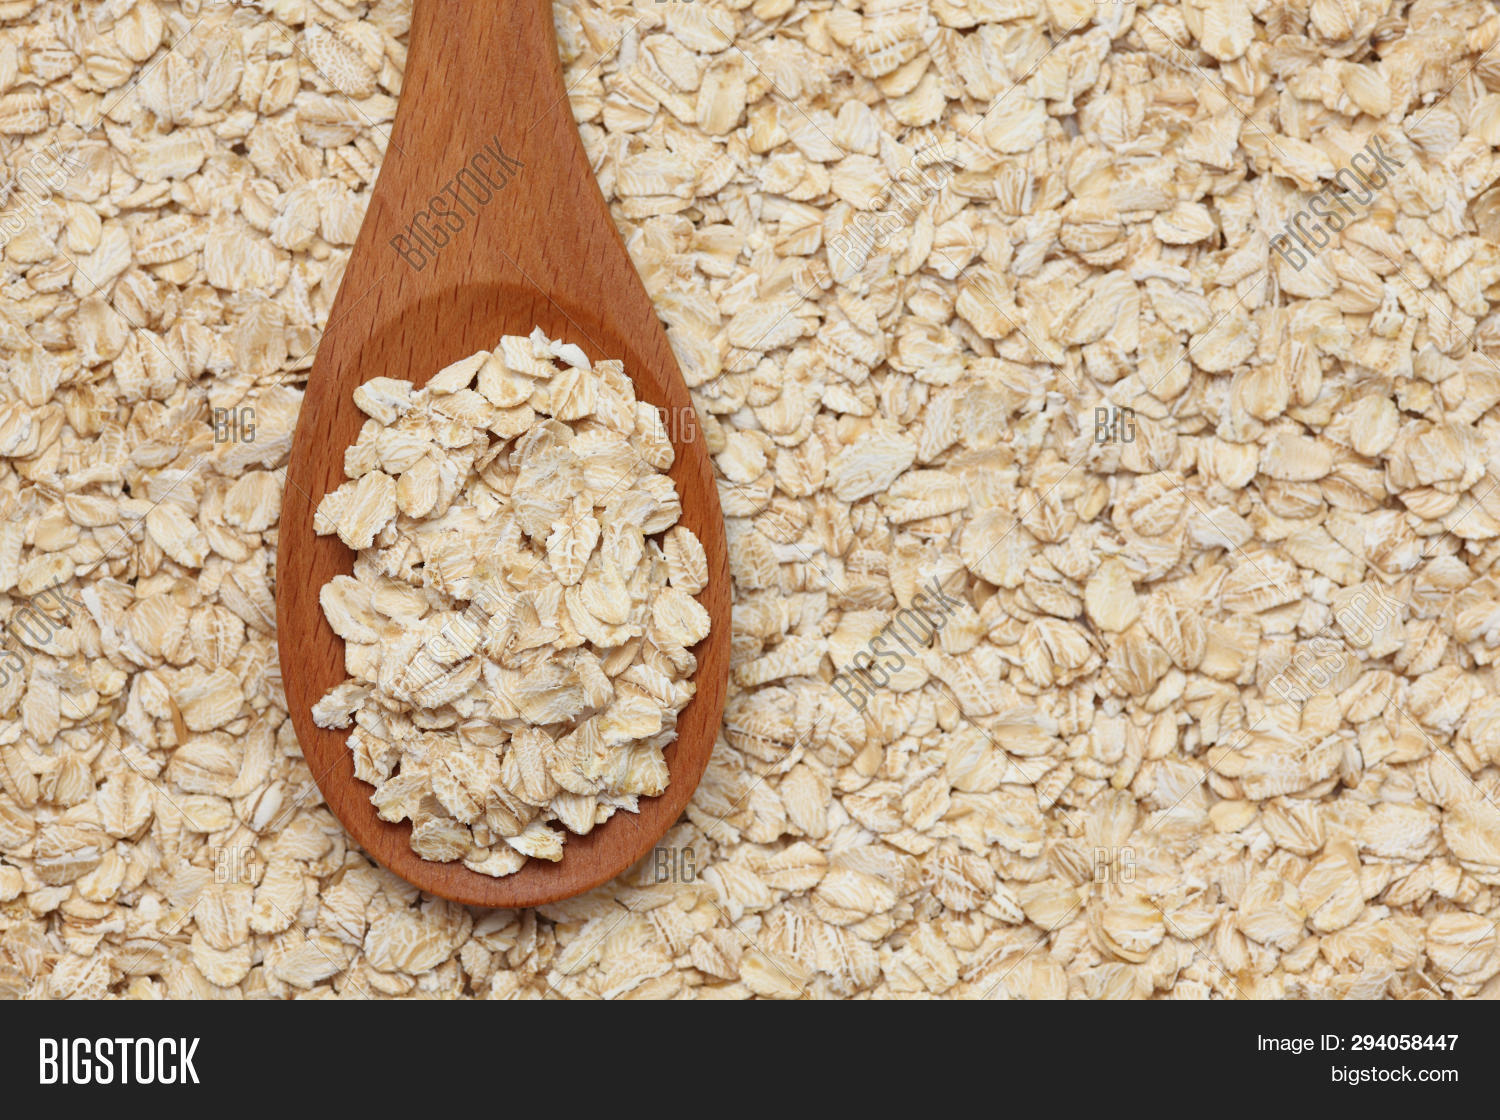 And,Close-up,Drink,Dry,Eating,Flake,Food,Healthy,Heap,Horizontal,Ingredient,Meal,Nobody,Oat,Oatmeal,Oats,Photography,Raw,Rolled,Shot,Spoon,Staple,Studio,Wood,Wooden